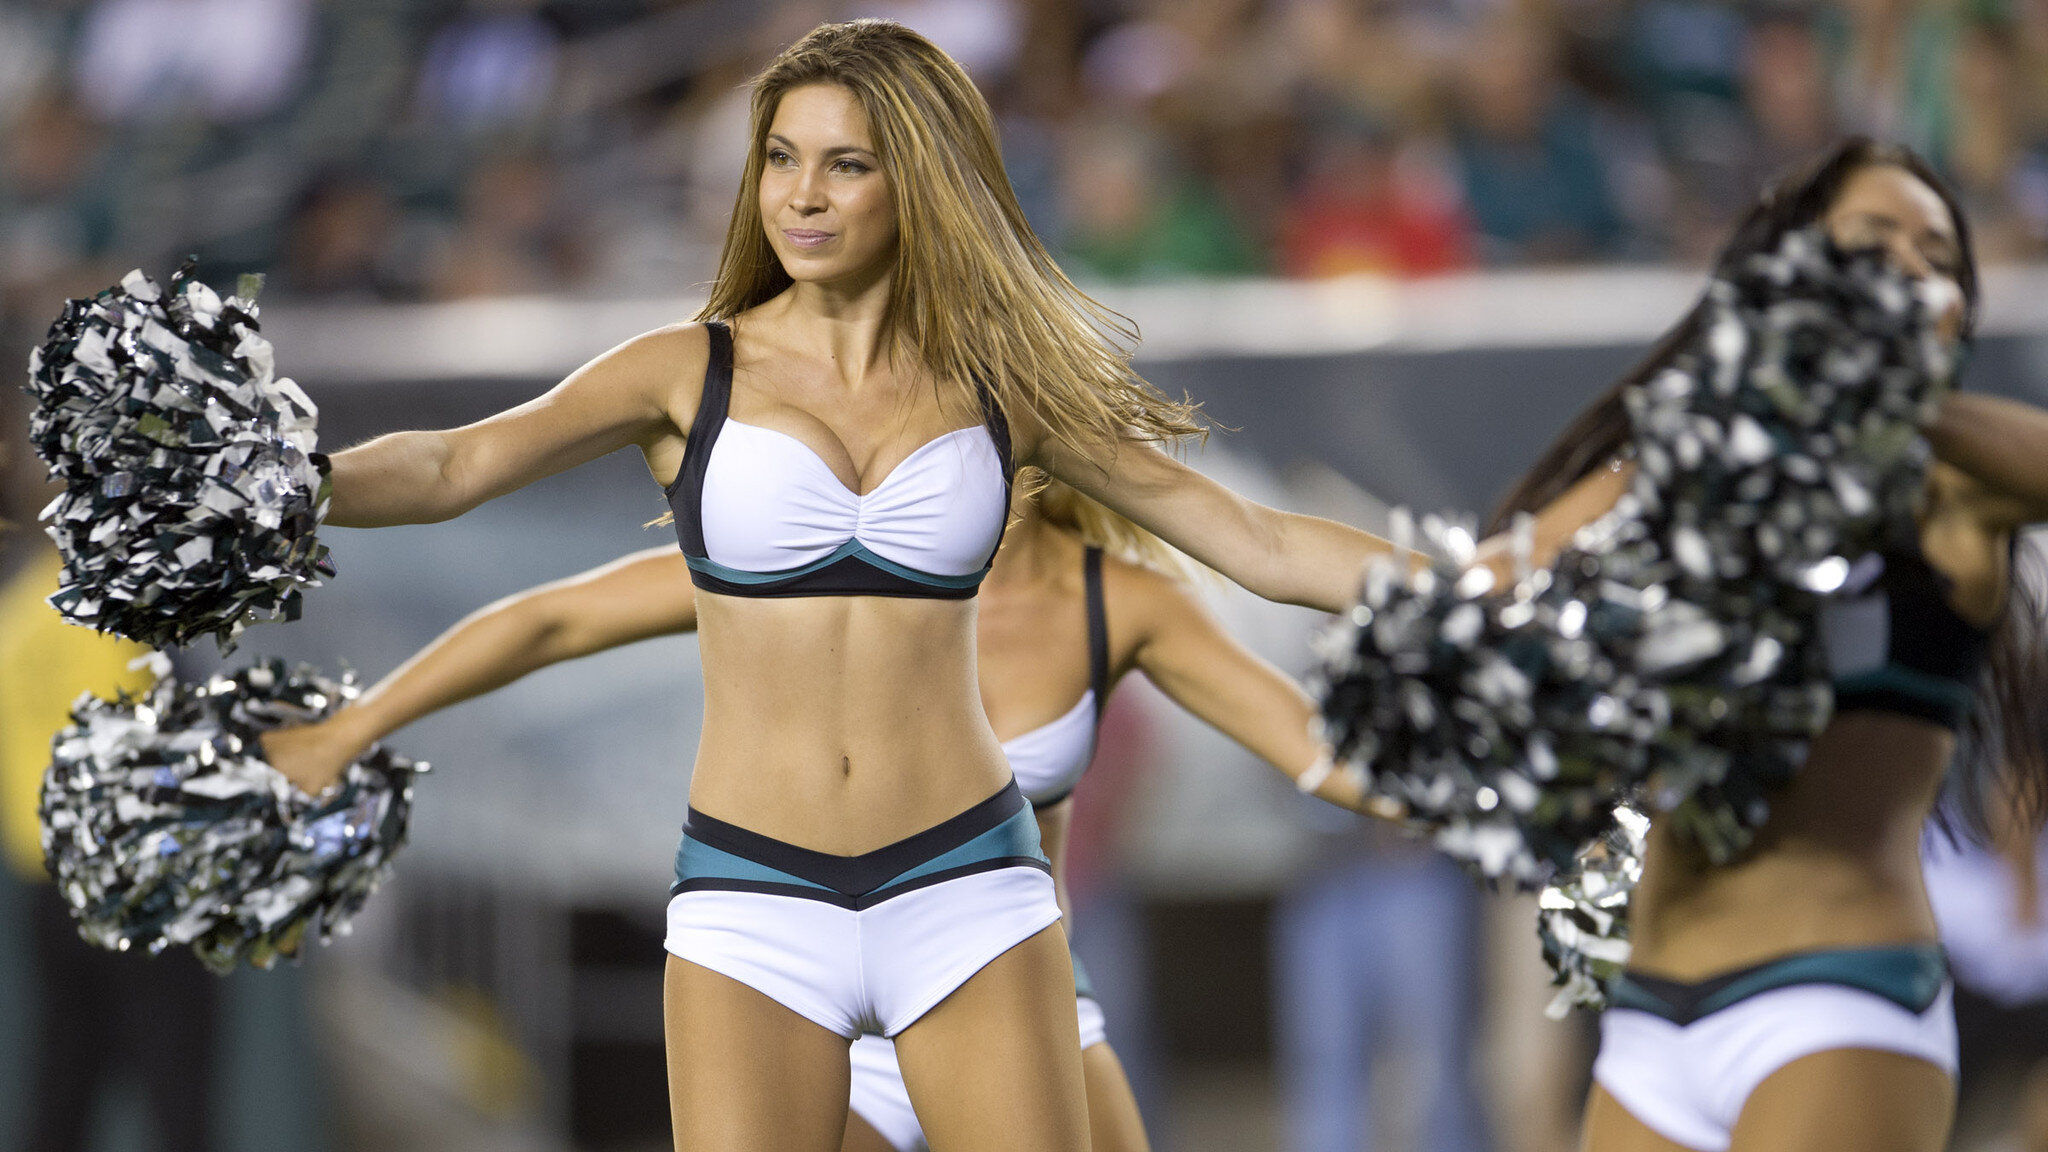 Giants Vs. Eagles Sunday Night Football Odds and Pick